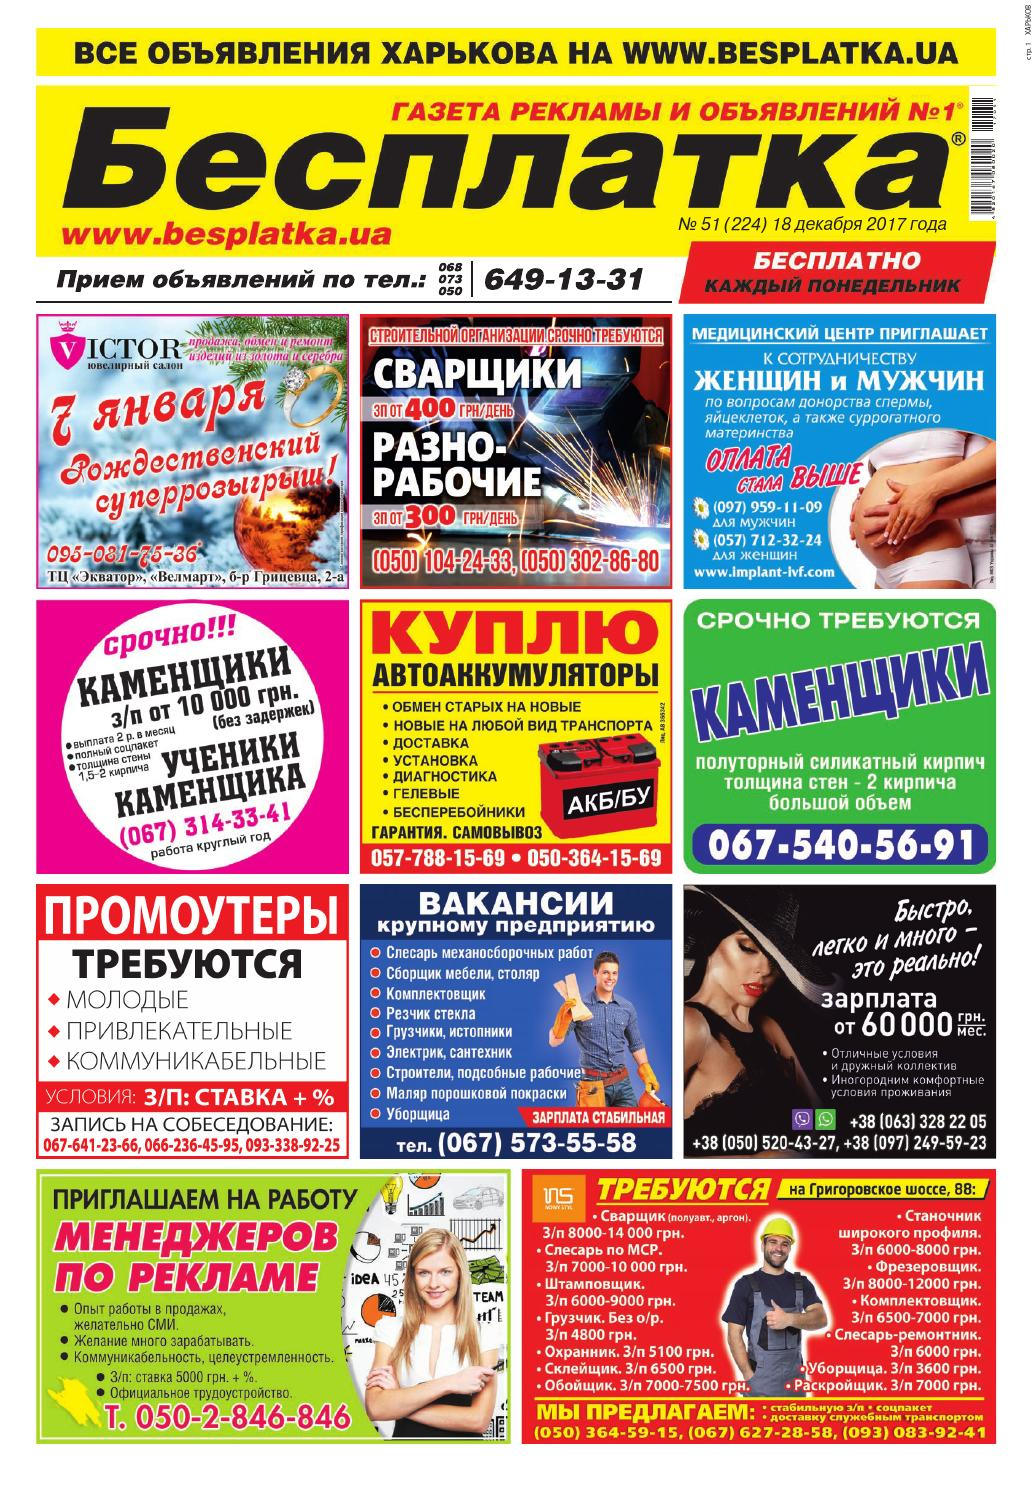 Besplatka  51Харьков by besplatka ukraine - issuu 966ba1a69a949